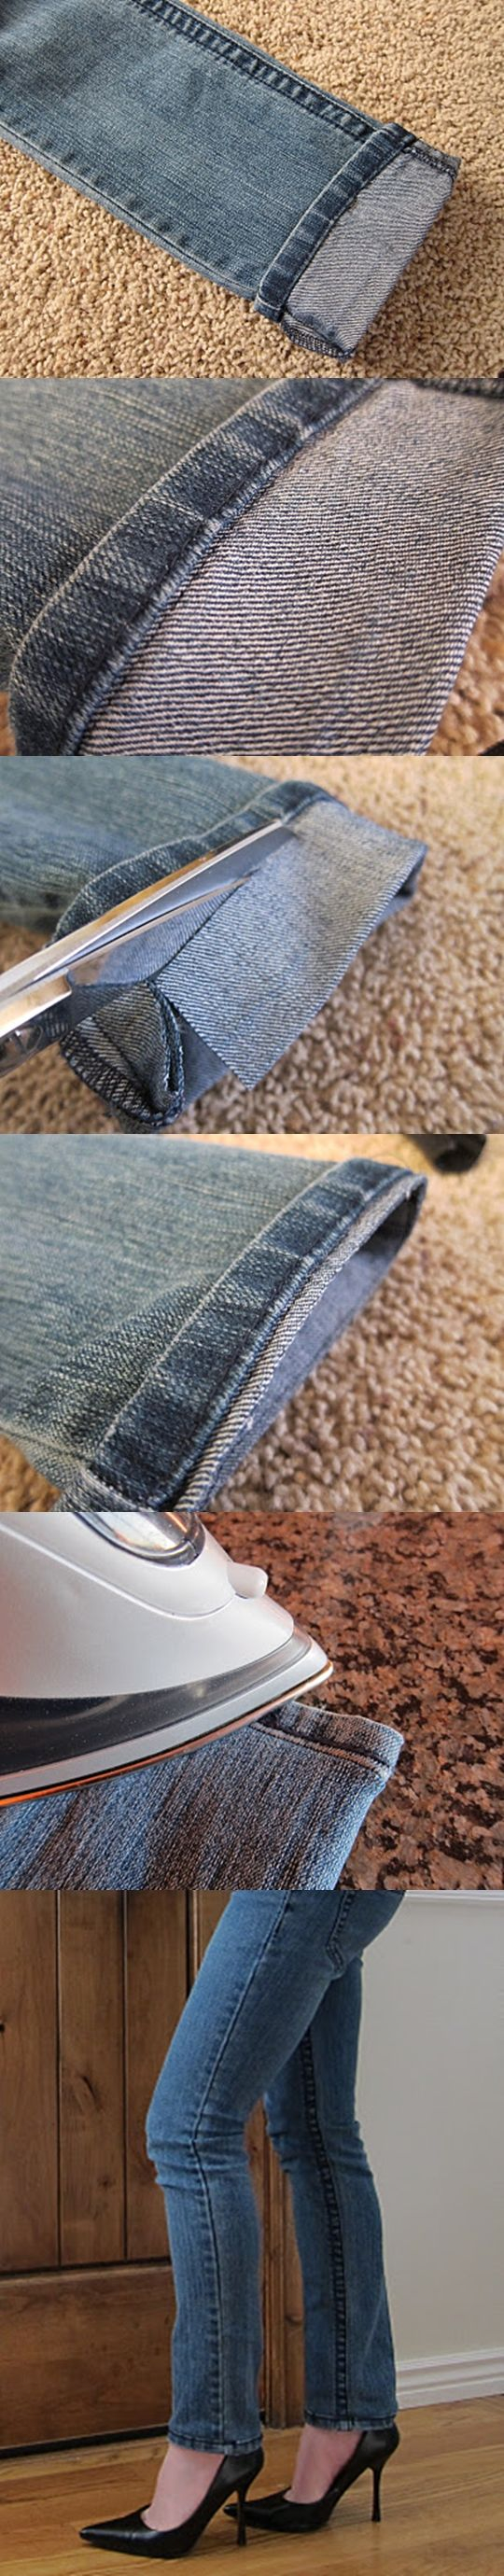 Wonderful DIY Shorten Long Jeans But Keeping The Orignal Hem | WonderfulDIY.com